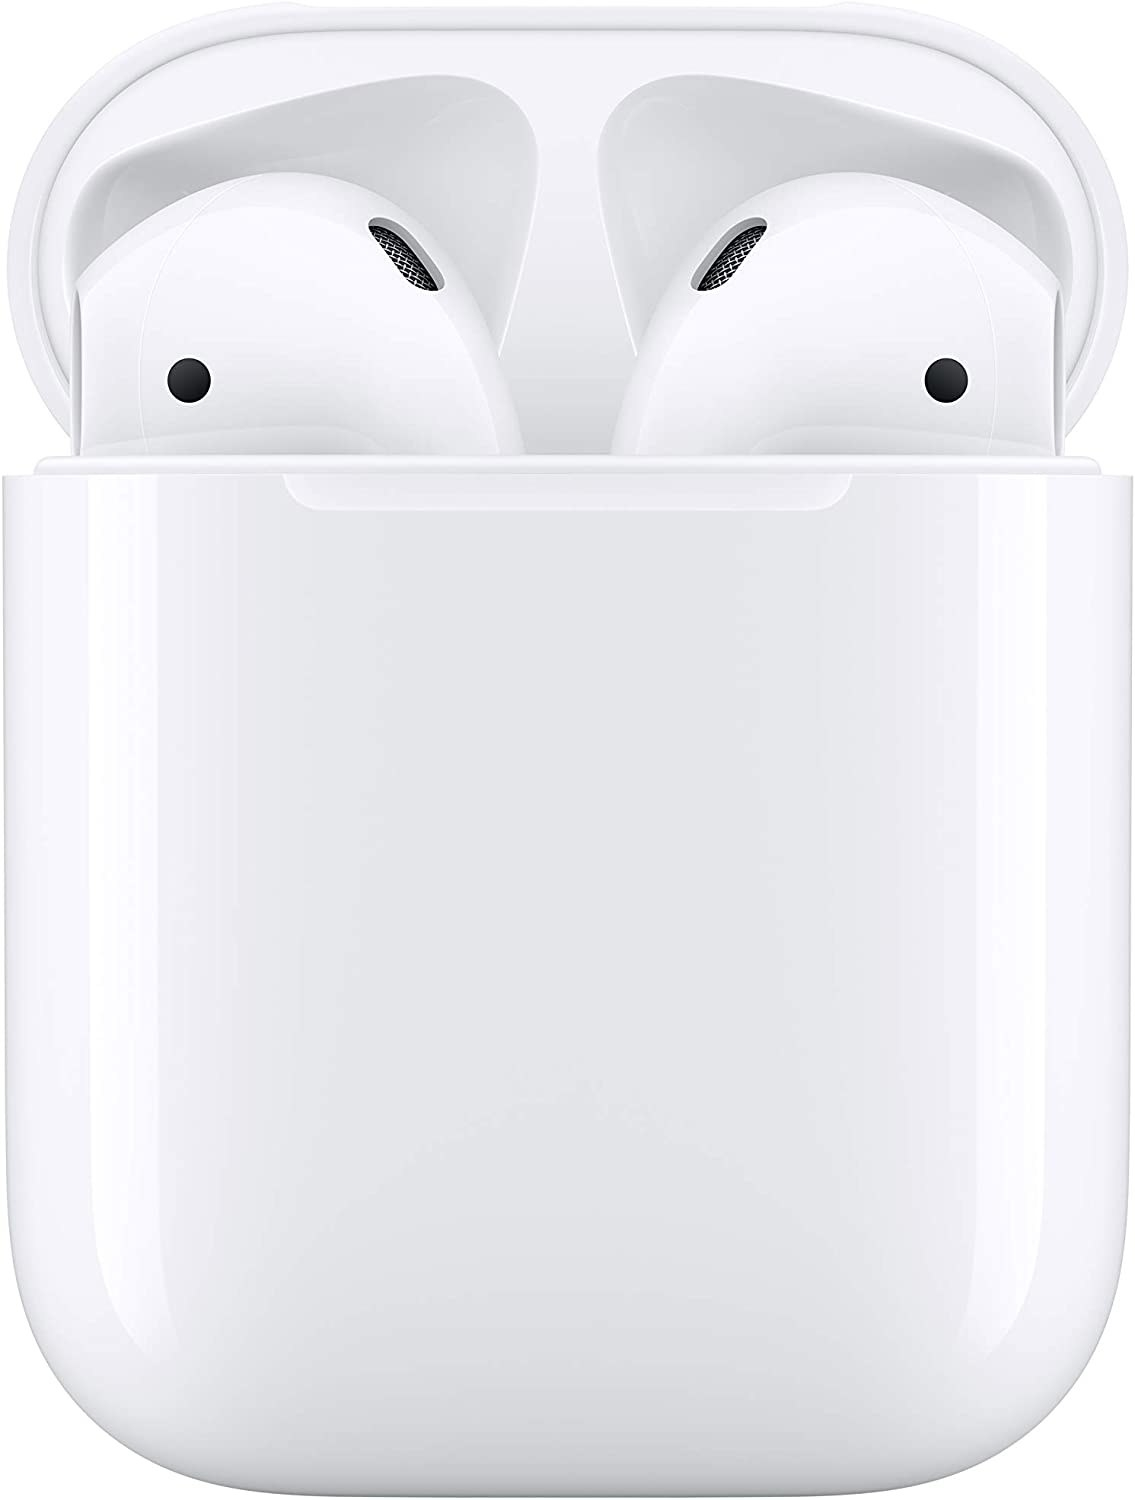 A set of Apple AirPods.